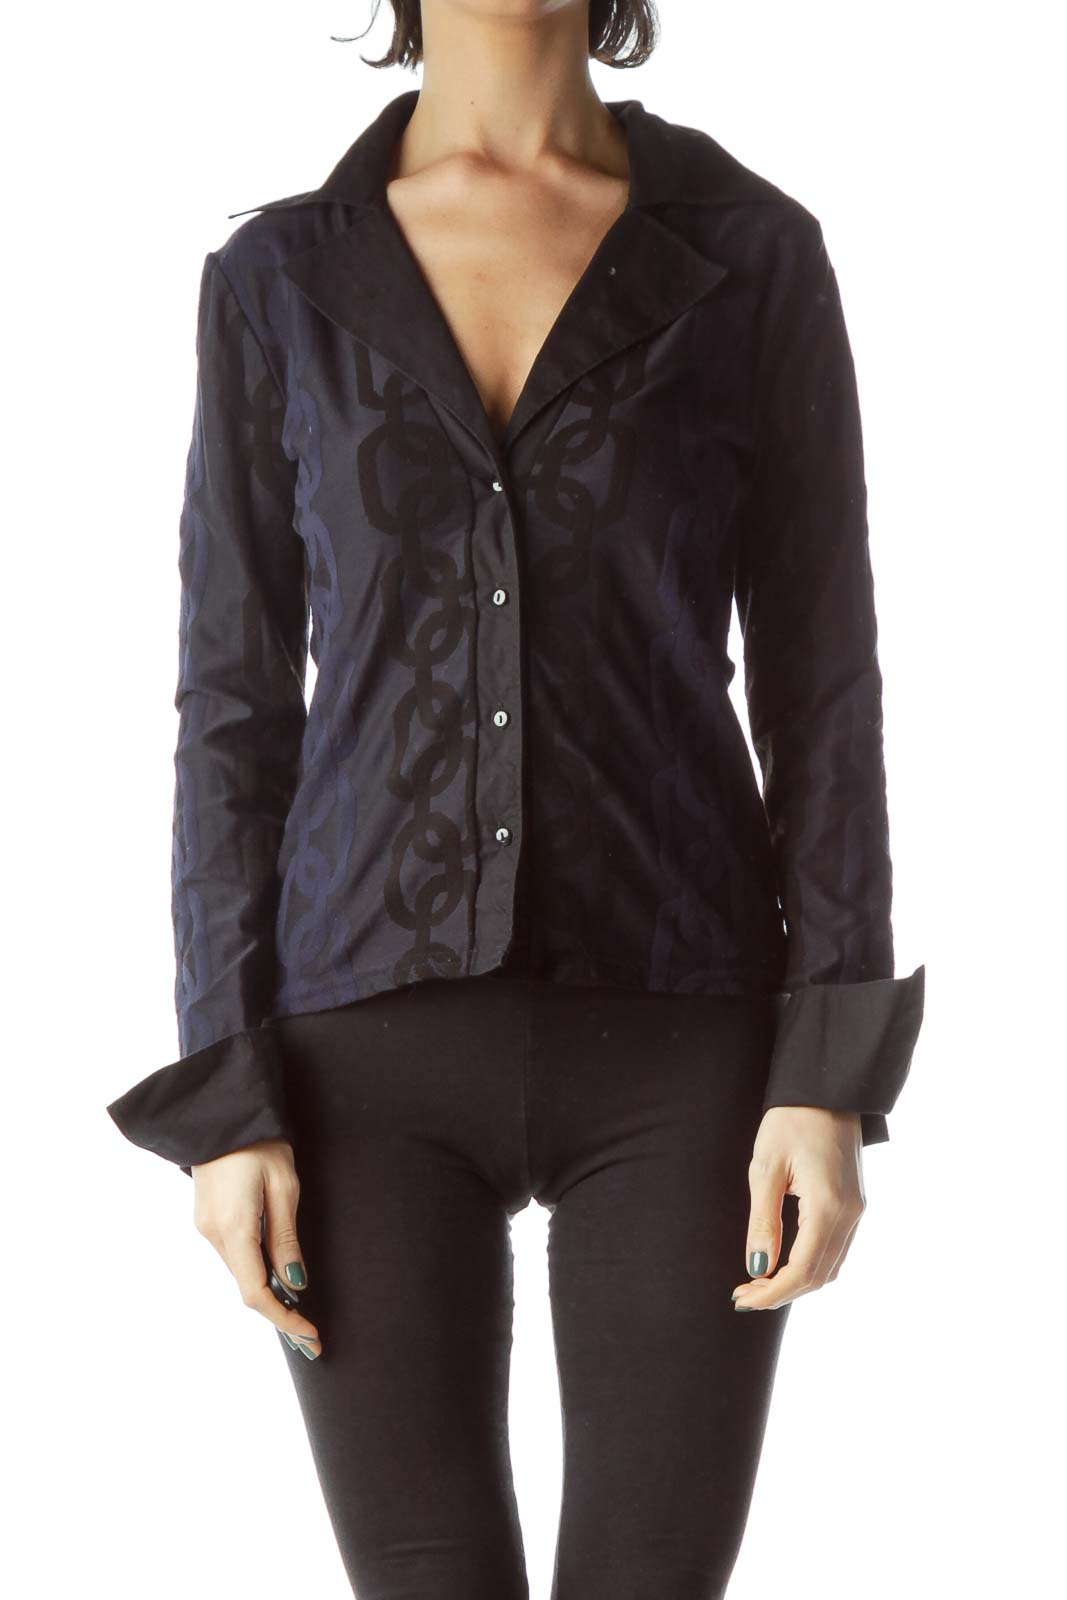 Black Navy Blue Jacquared Collared Knit Top Front